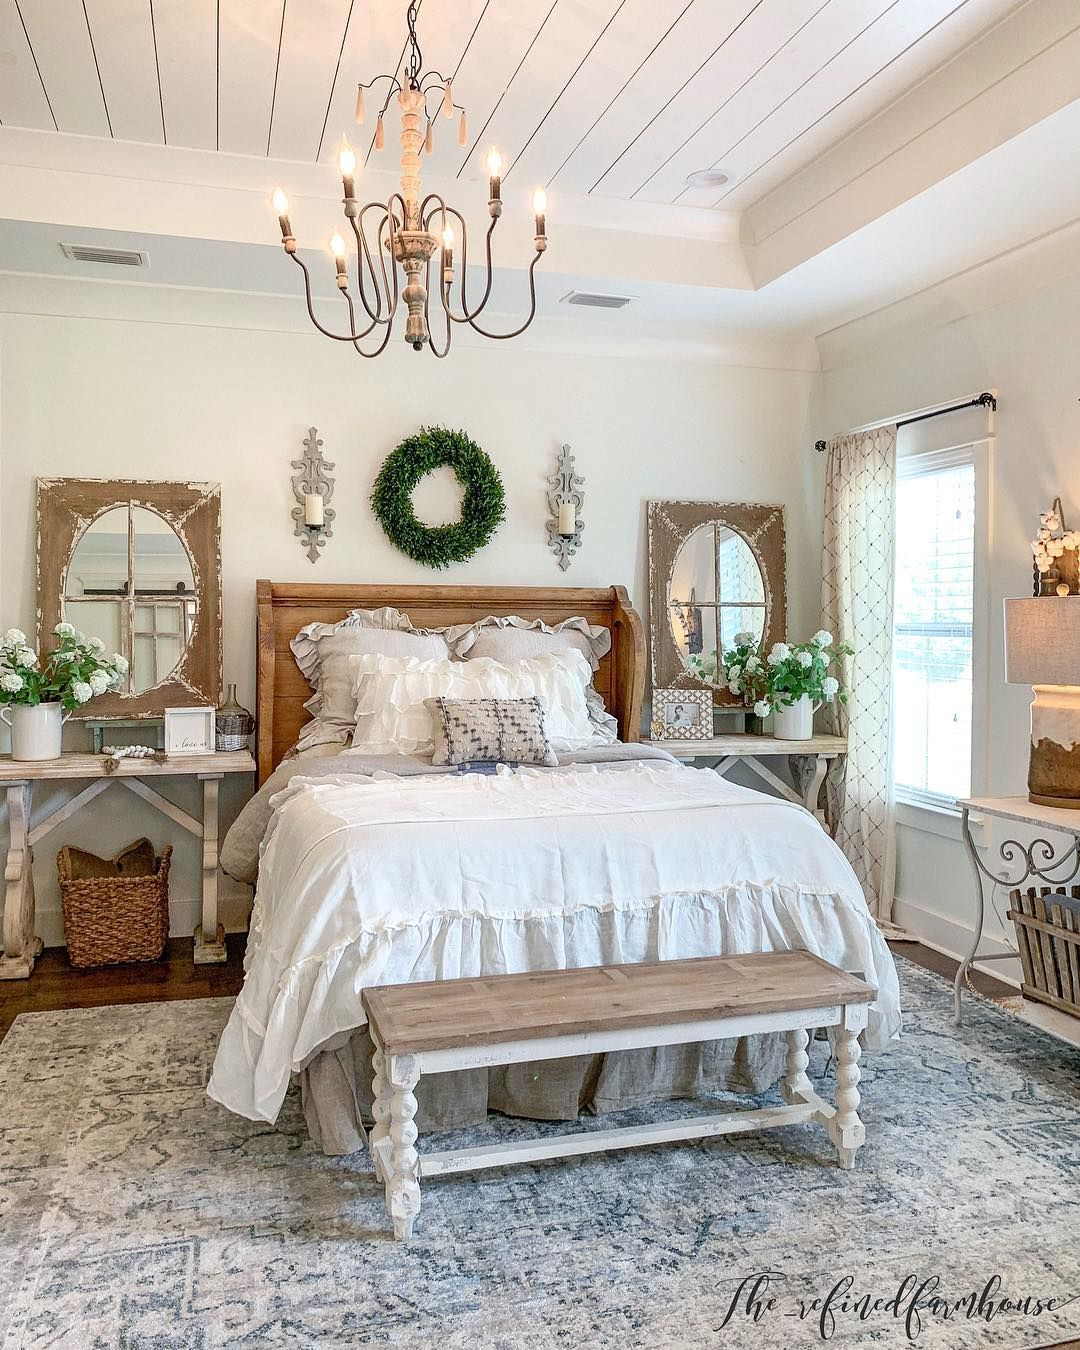 Wolf Whistles That S It We Can Go To Bed Now With Sweet Dreams Of This 𝒈𝒐𝒓𝒈𝒆𝒐𝒖𝒔 Master Amazing Bedroom Designs Country Master Bedroom Woman Bedroom